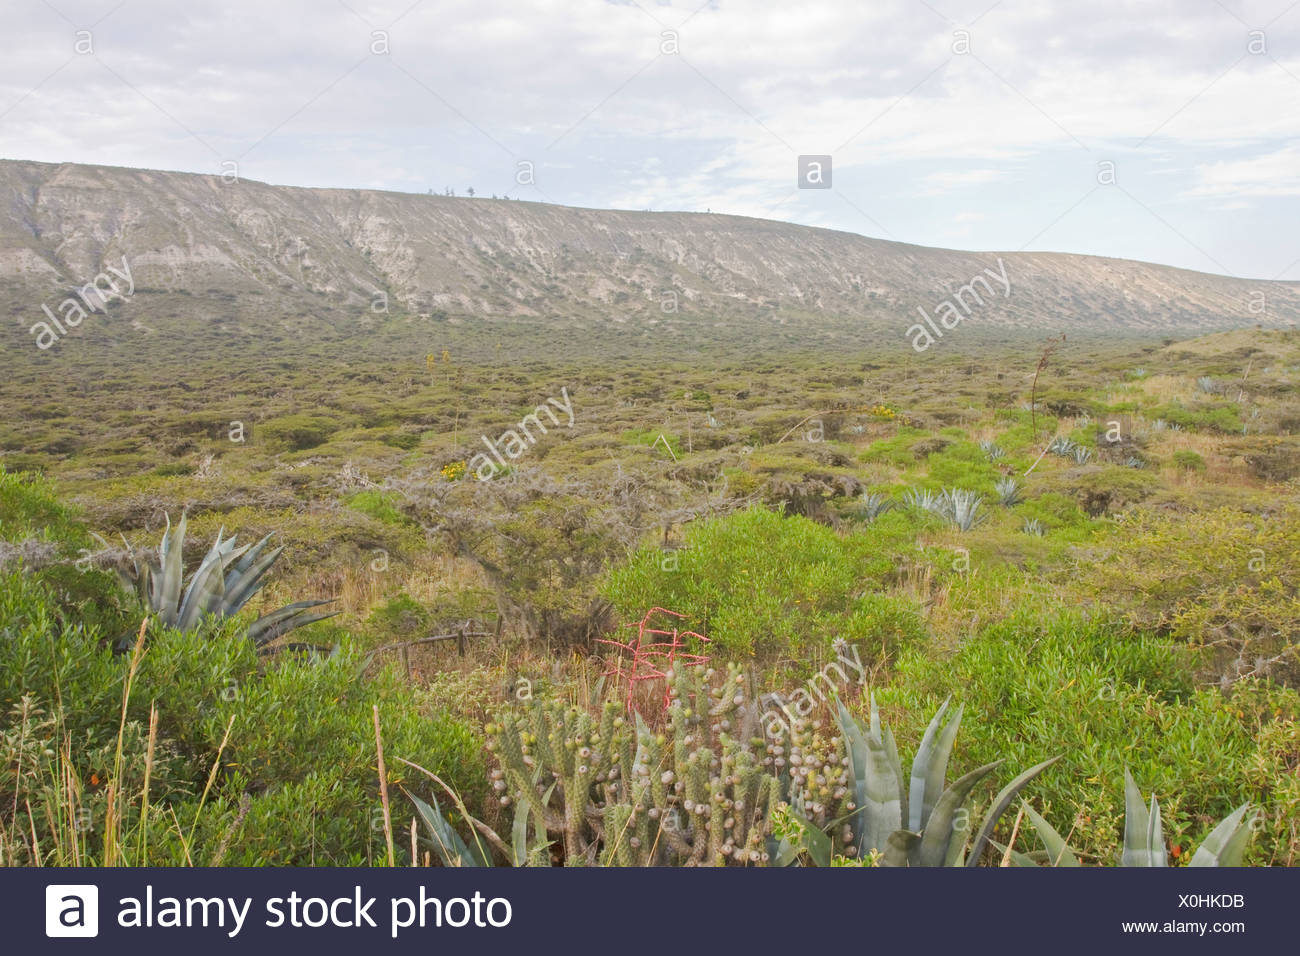 The Jerusalem protected area in central Ecuador. - Stock Image